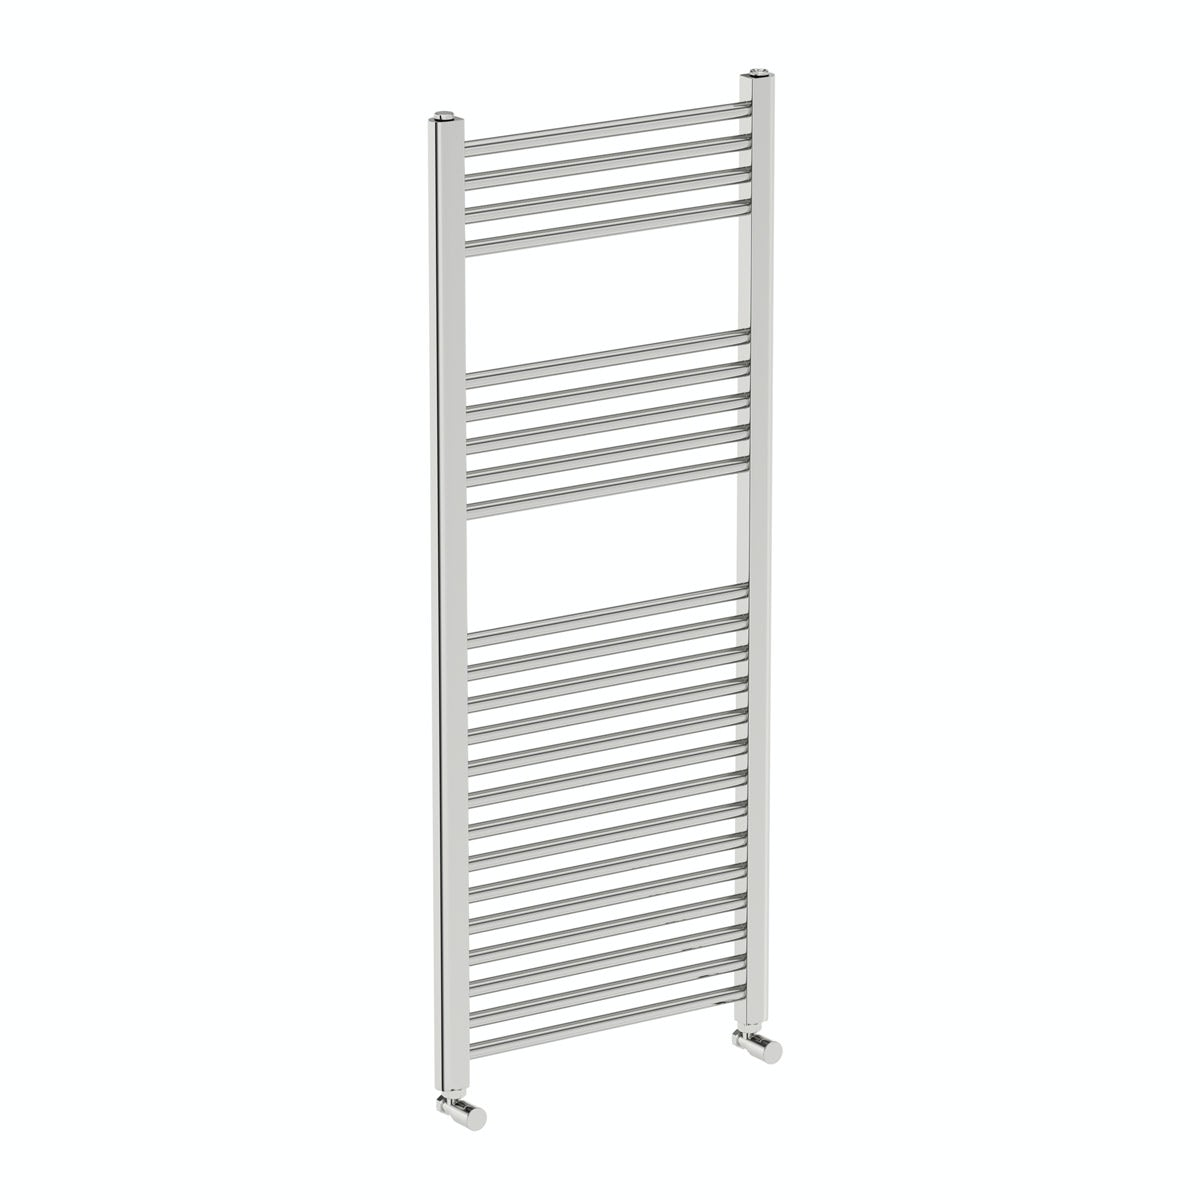 Eden round heated towel rail 1200 x 490